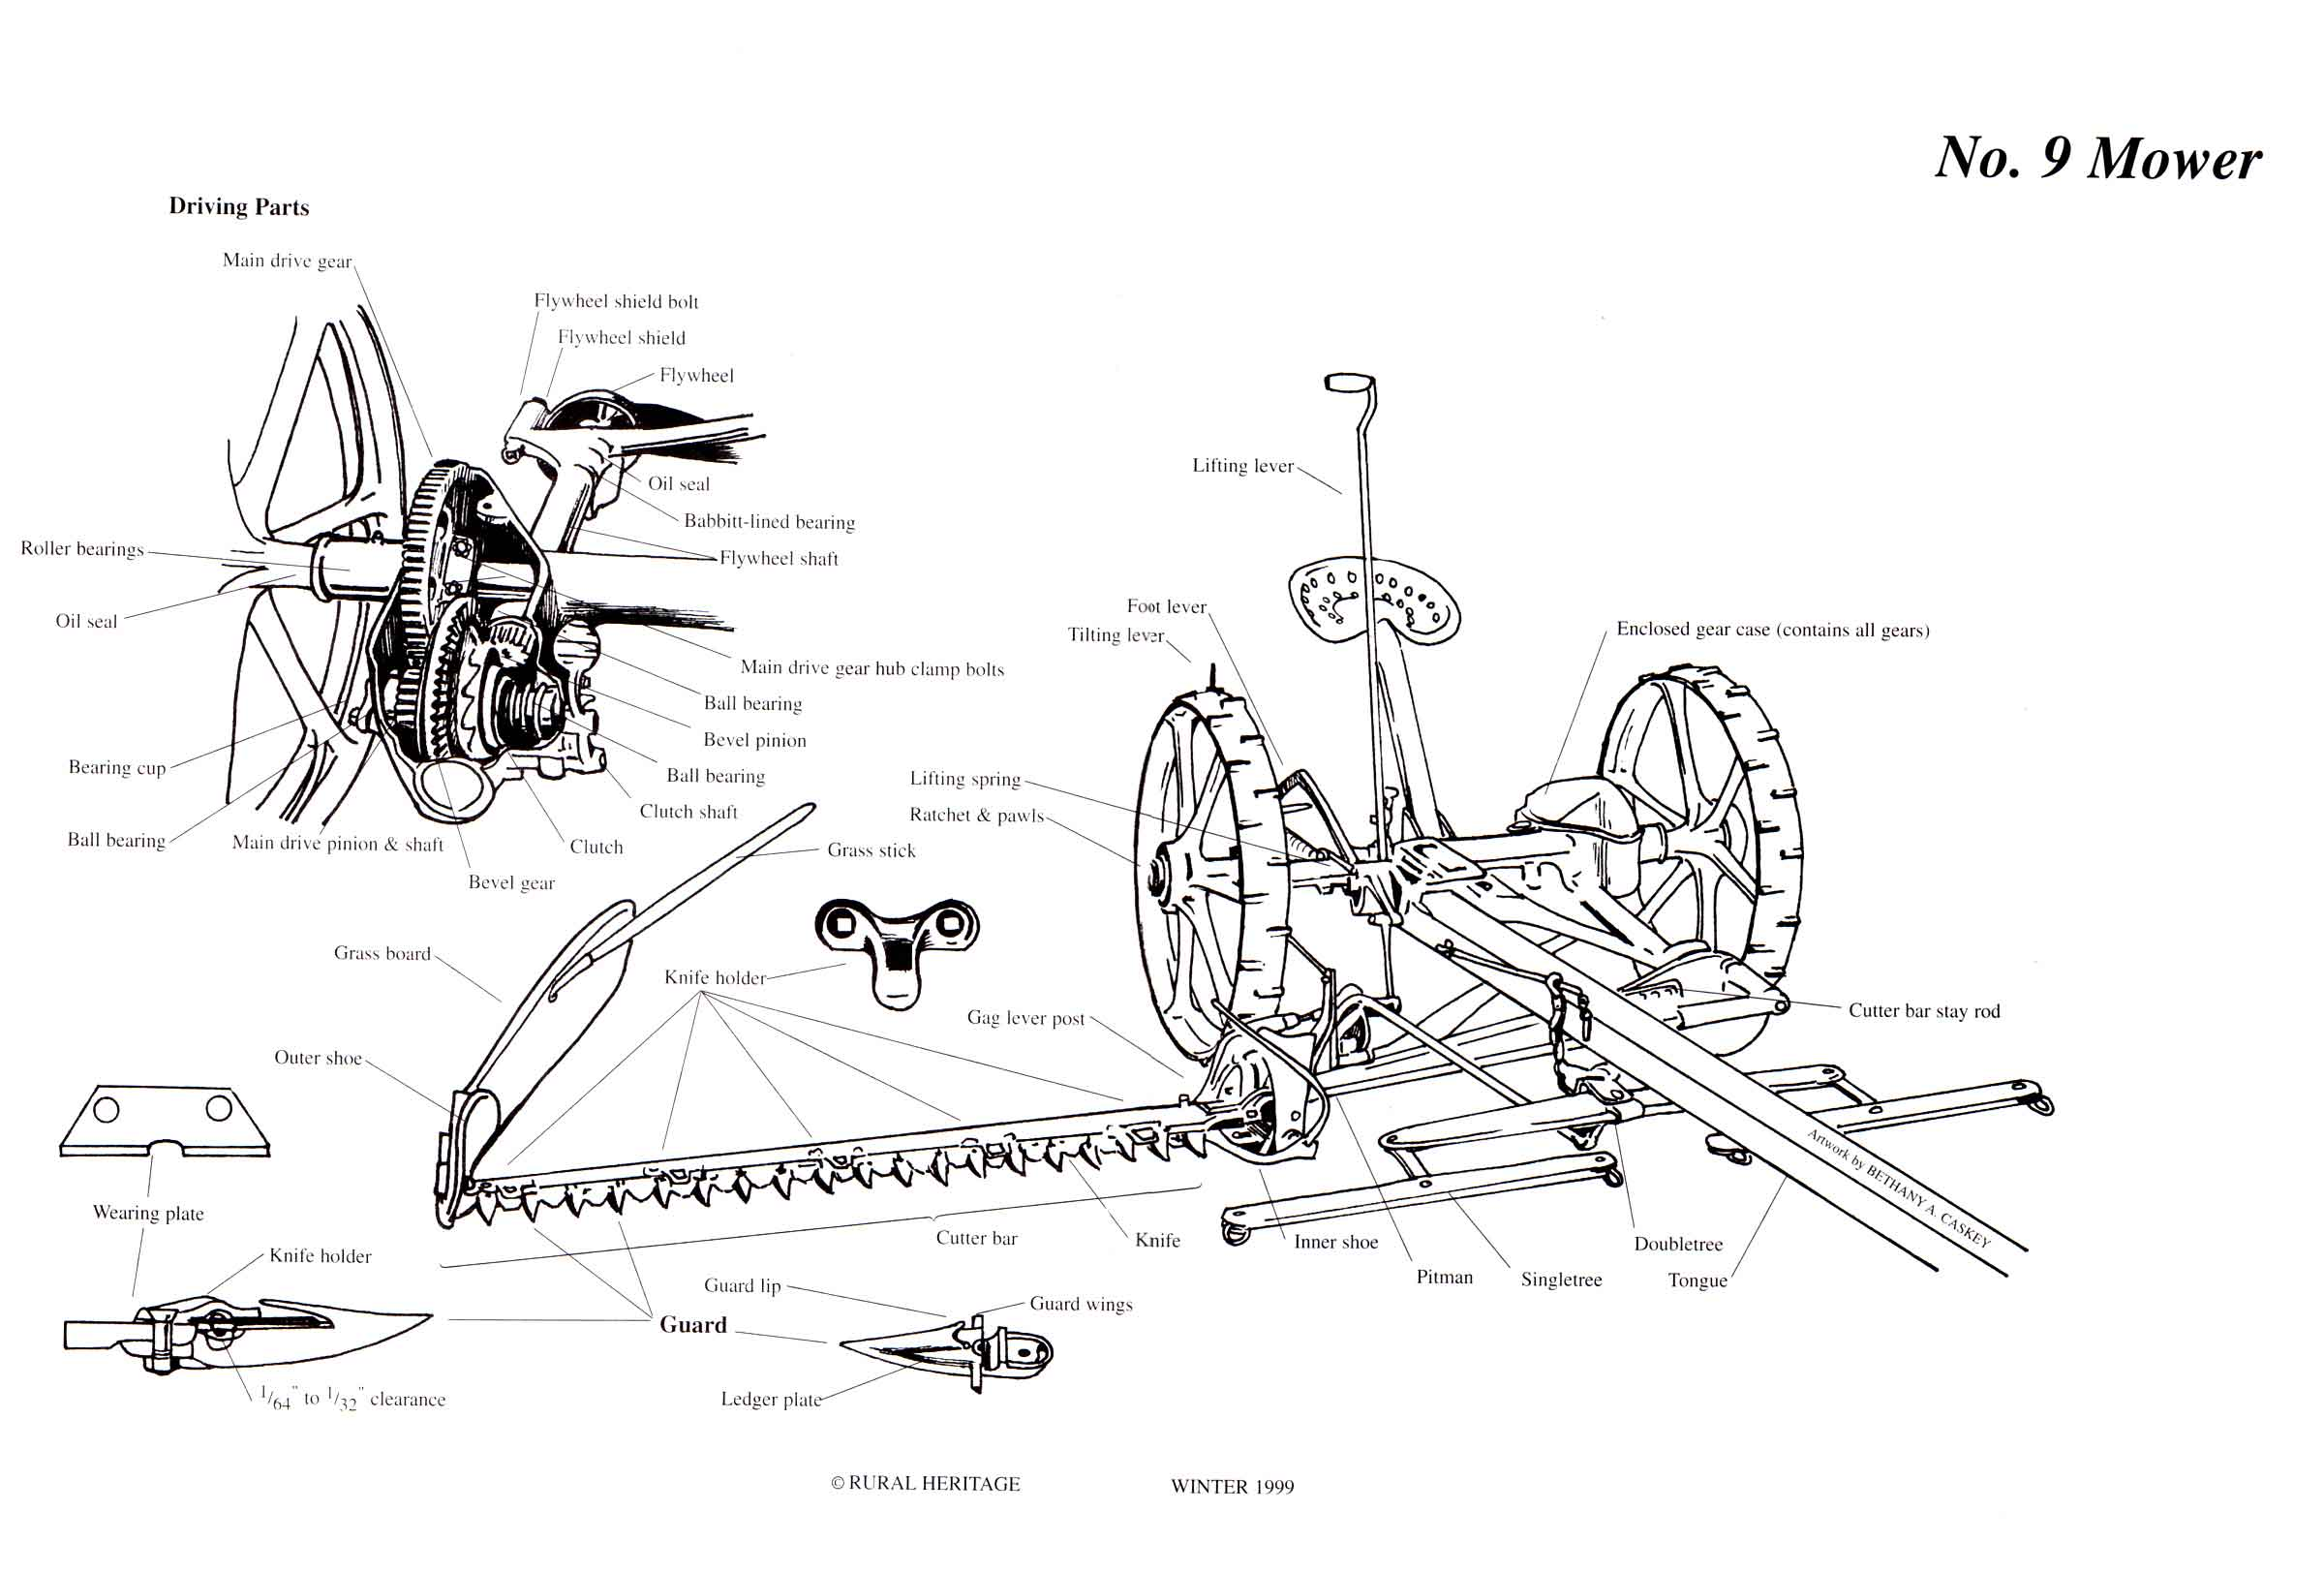 no 9 mower illustrations